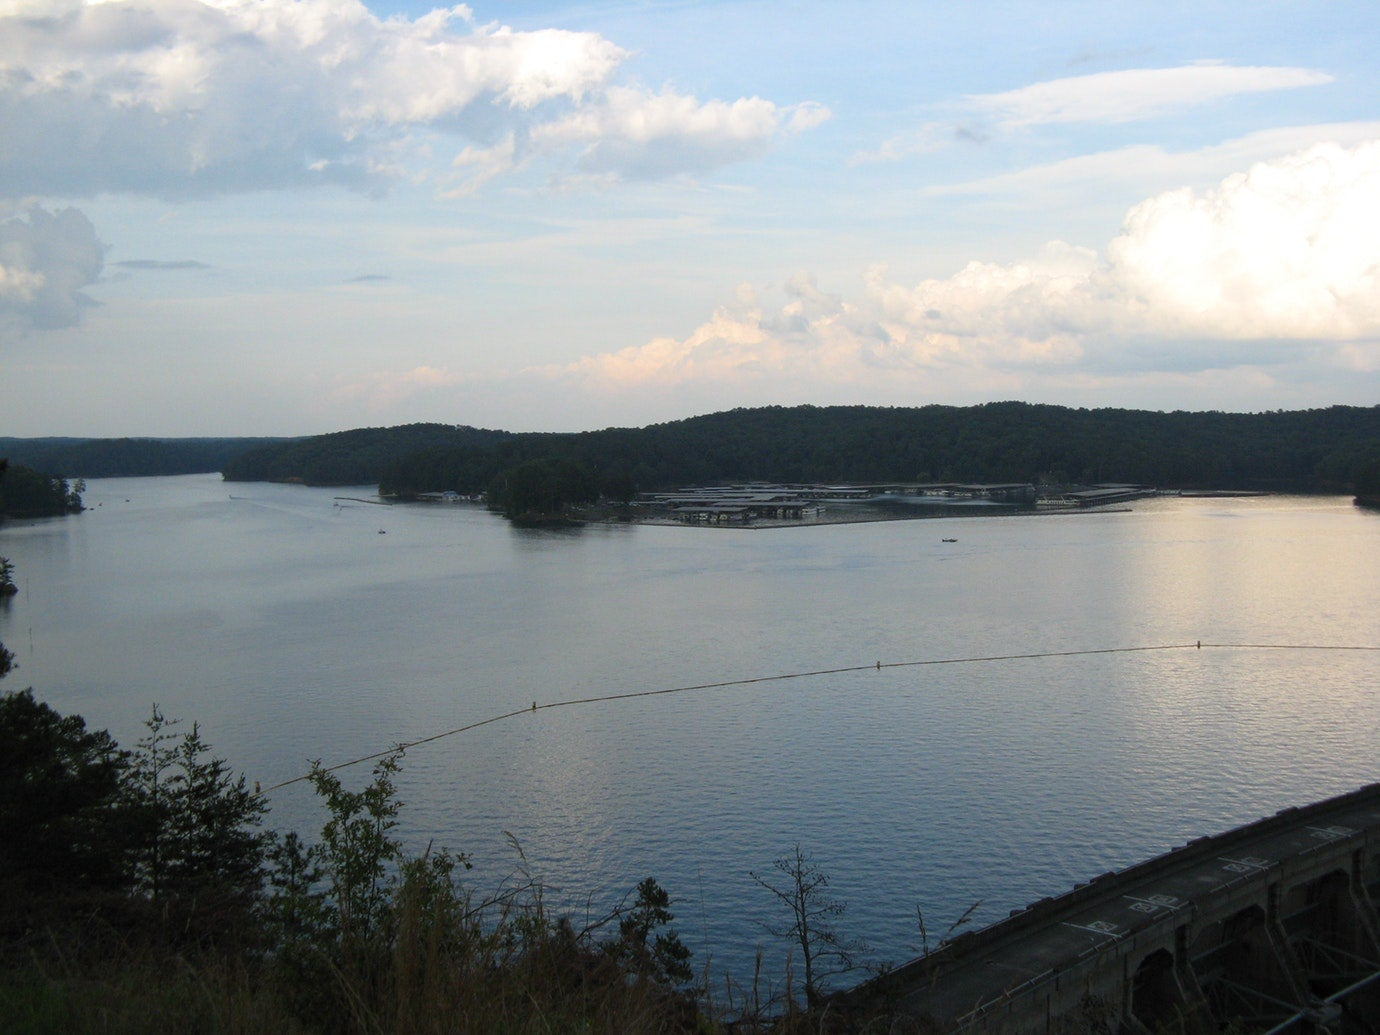 panoramic view of still waters of Lake Allatoona at dusk